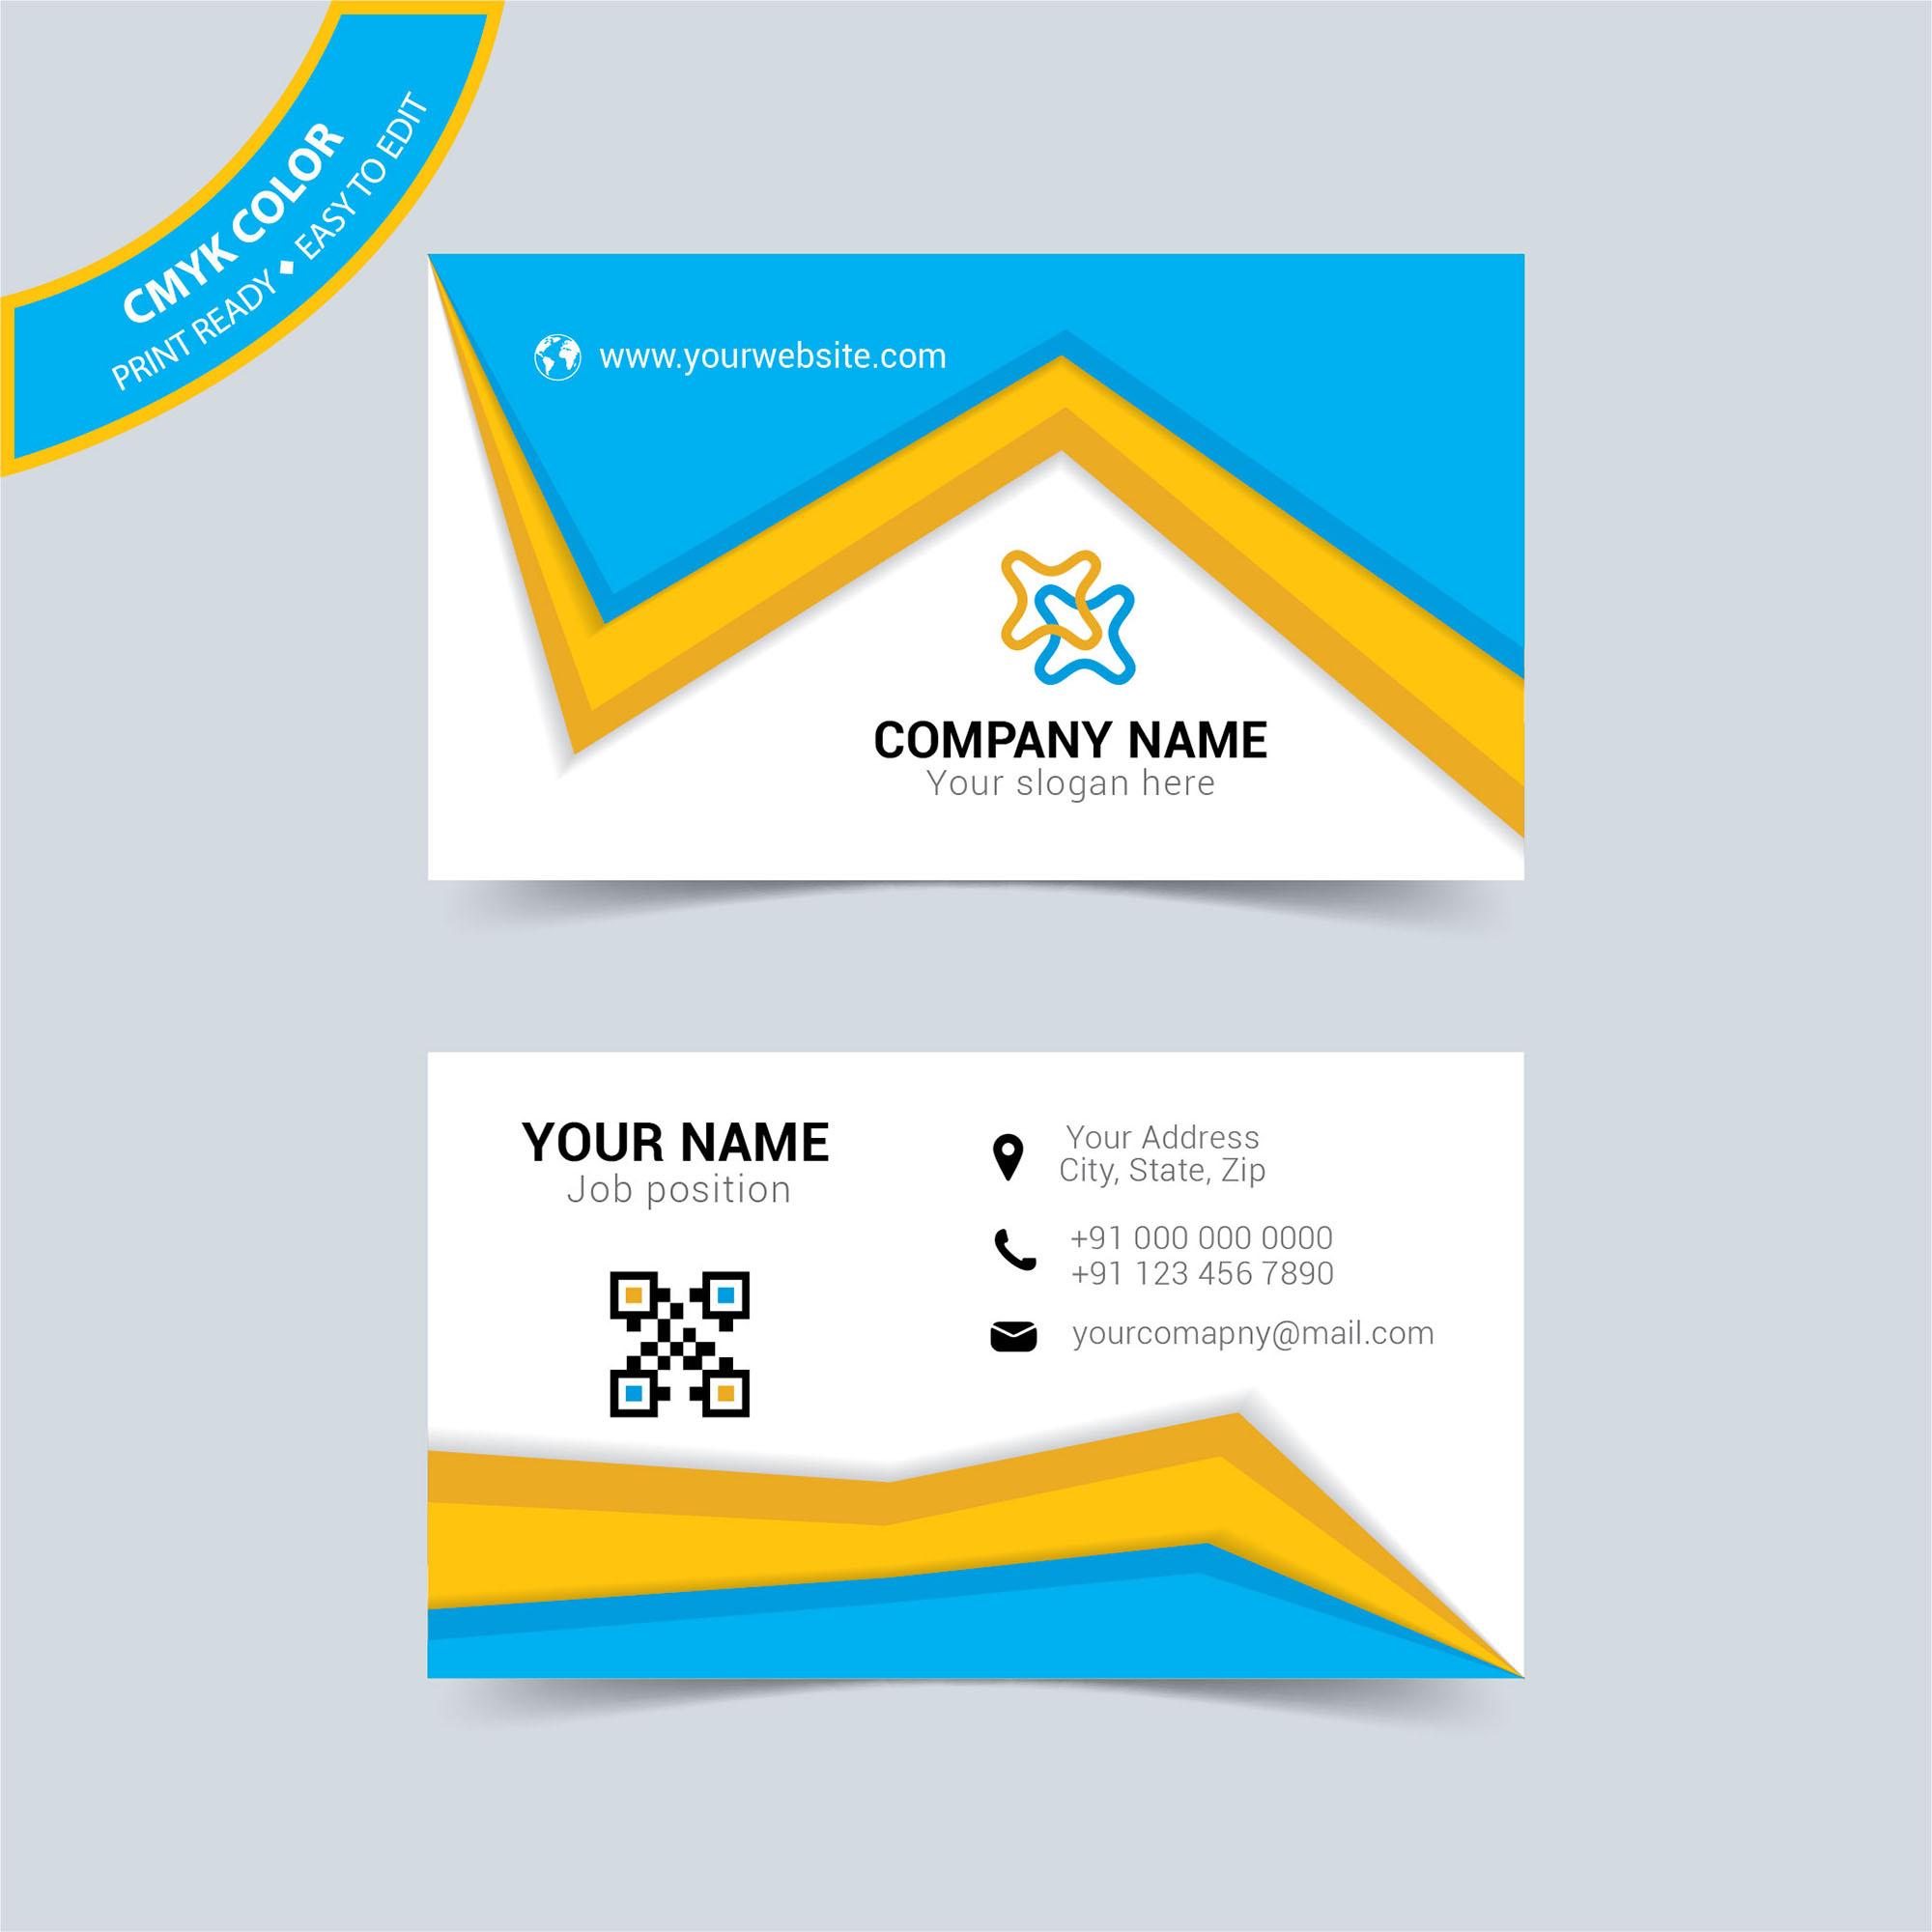 Creative corporate business card template free download wisxi business card business cards business card design business card template design templates reheart Image collections